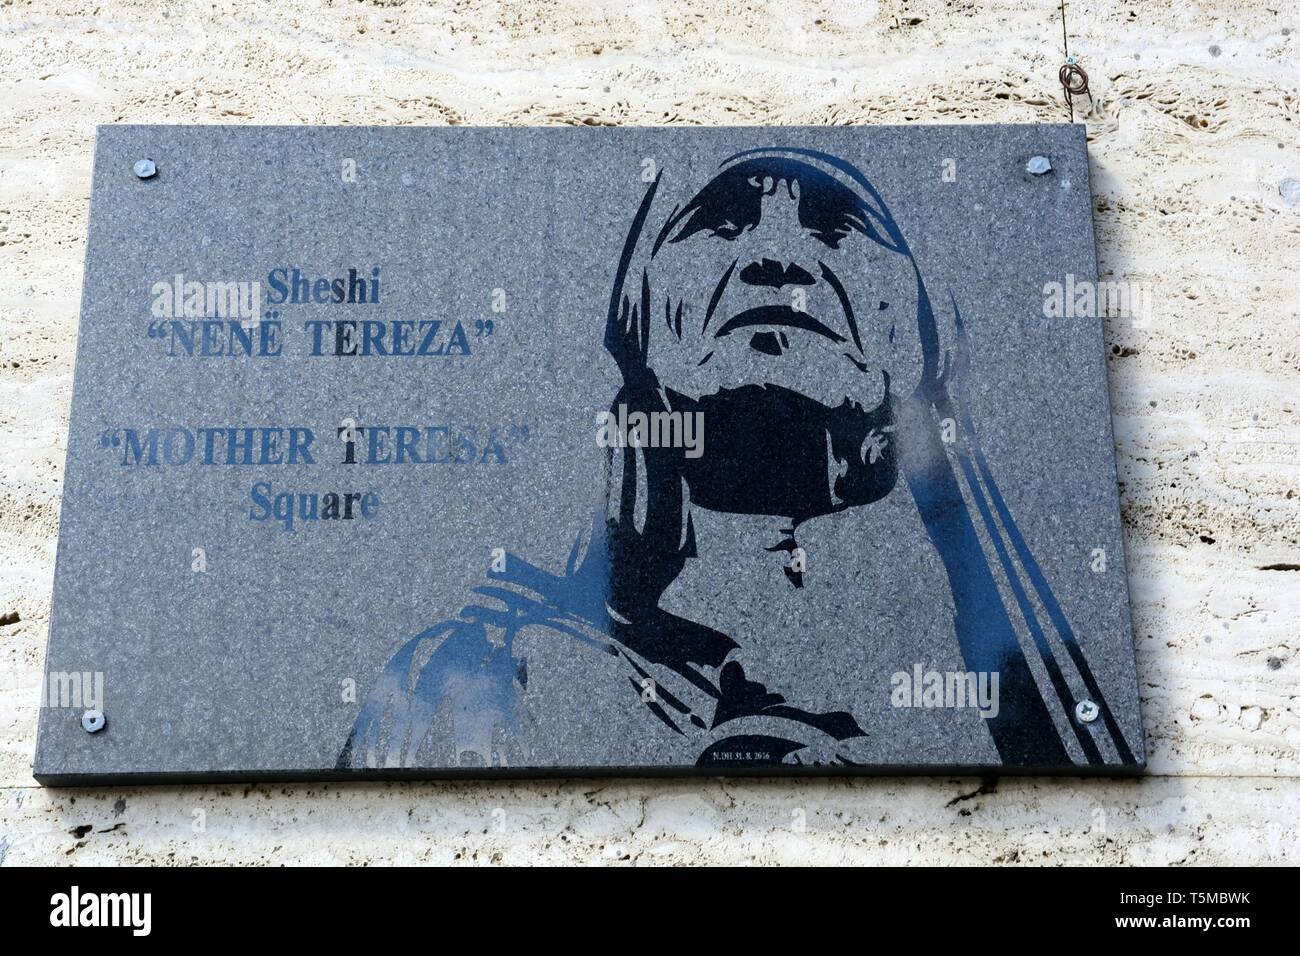 Plaque of Mother Teresa at Mother Teresa Square Tirana Albania - Stock Image